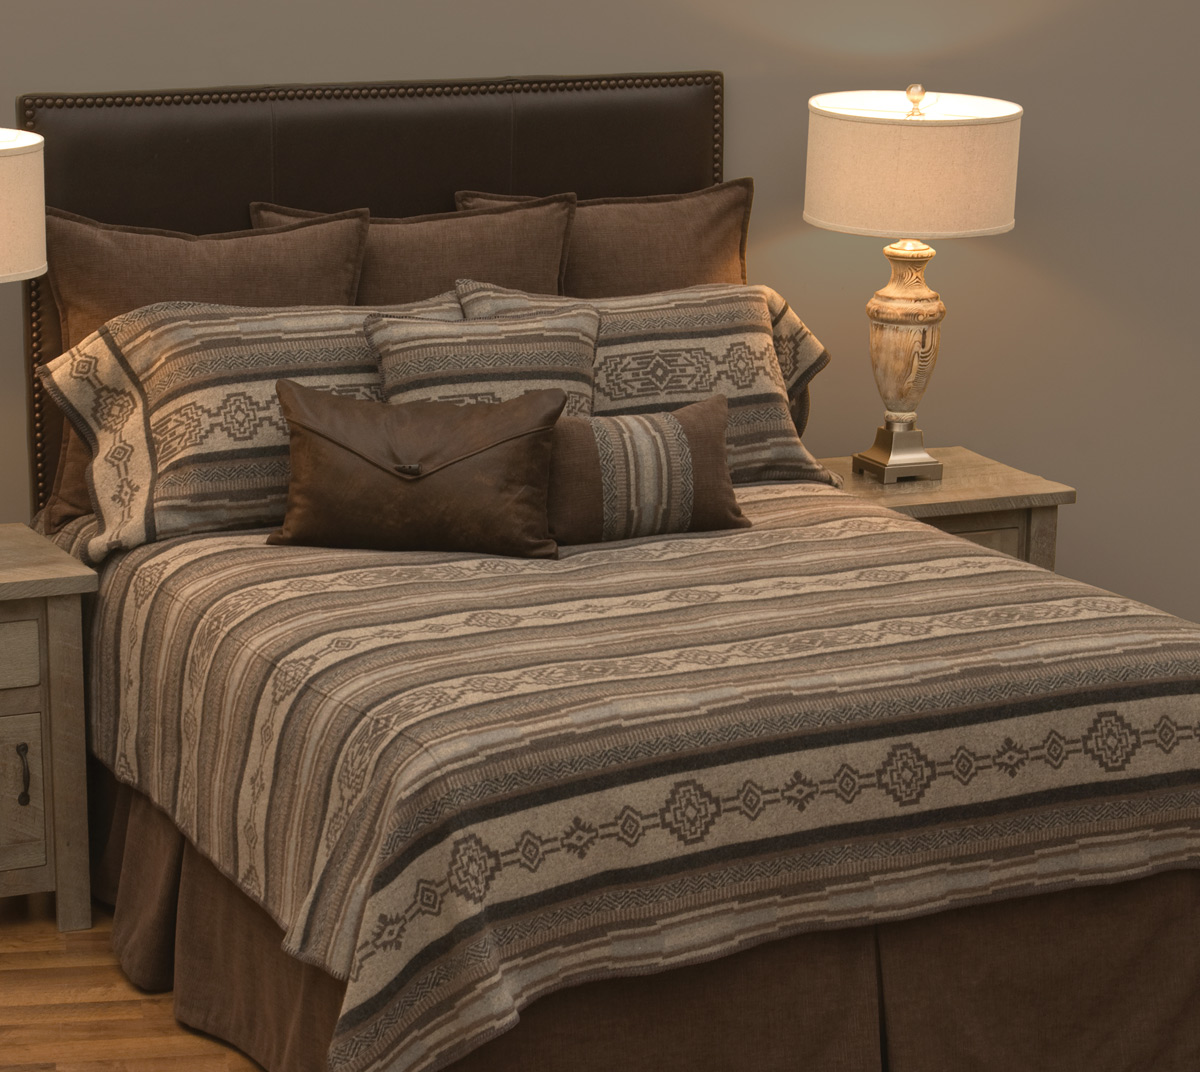 Lodge Lux Bedspread - King